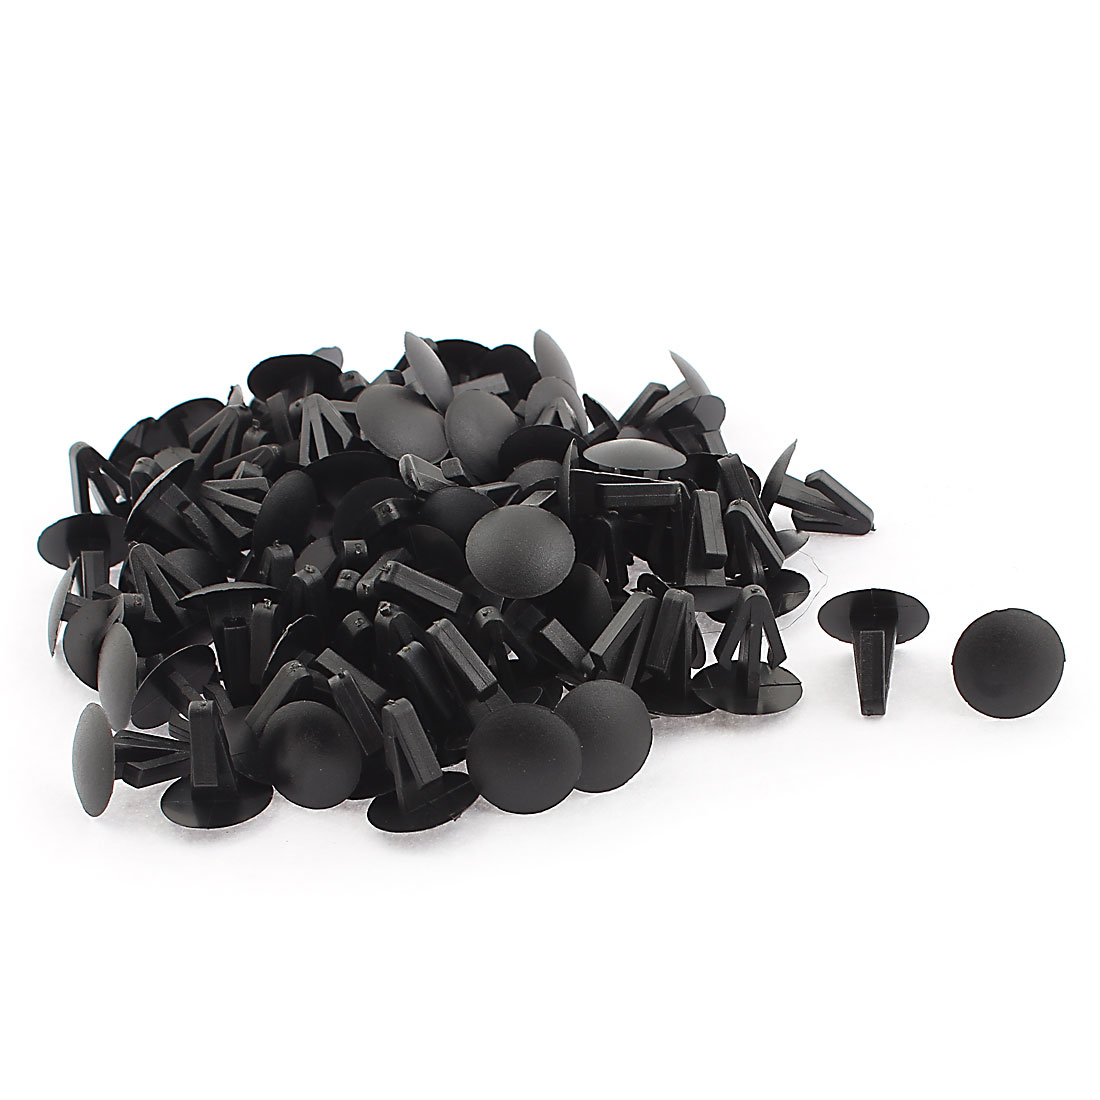 Auto Door Fender Fastener Trim Panel Retainer Clips Plastic Rivets Black 100pcs